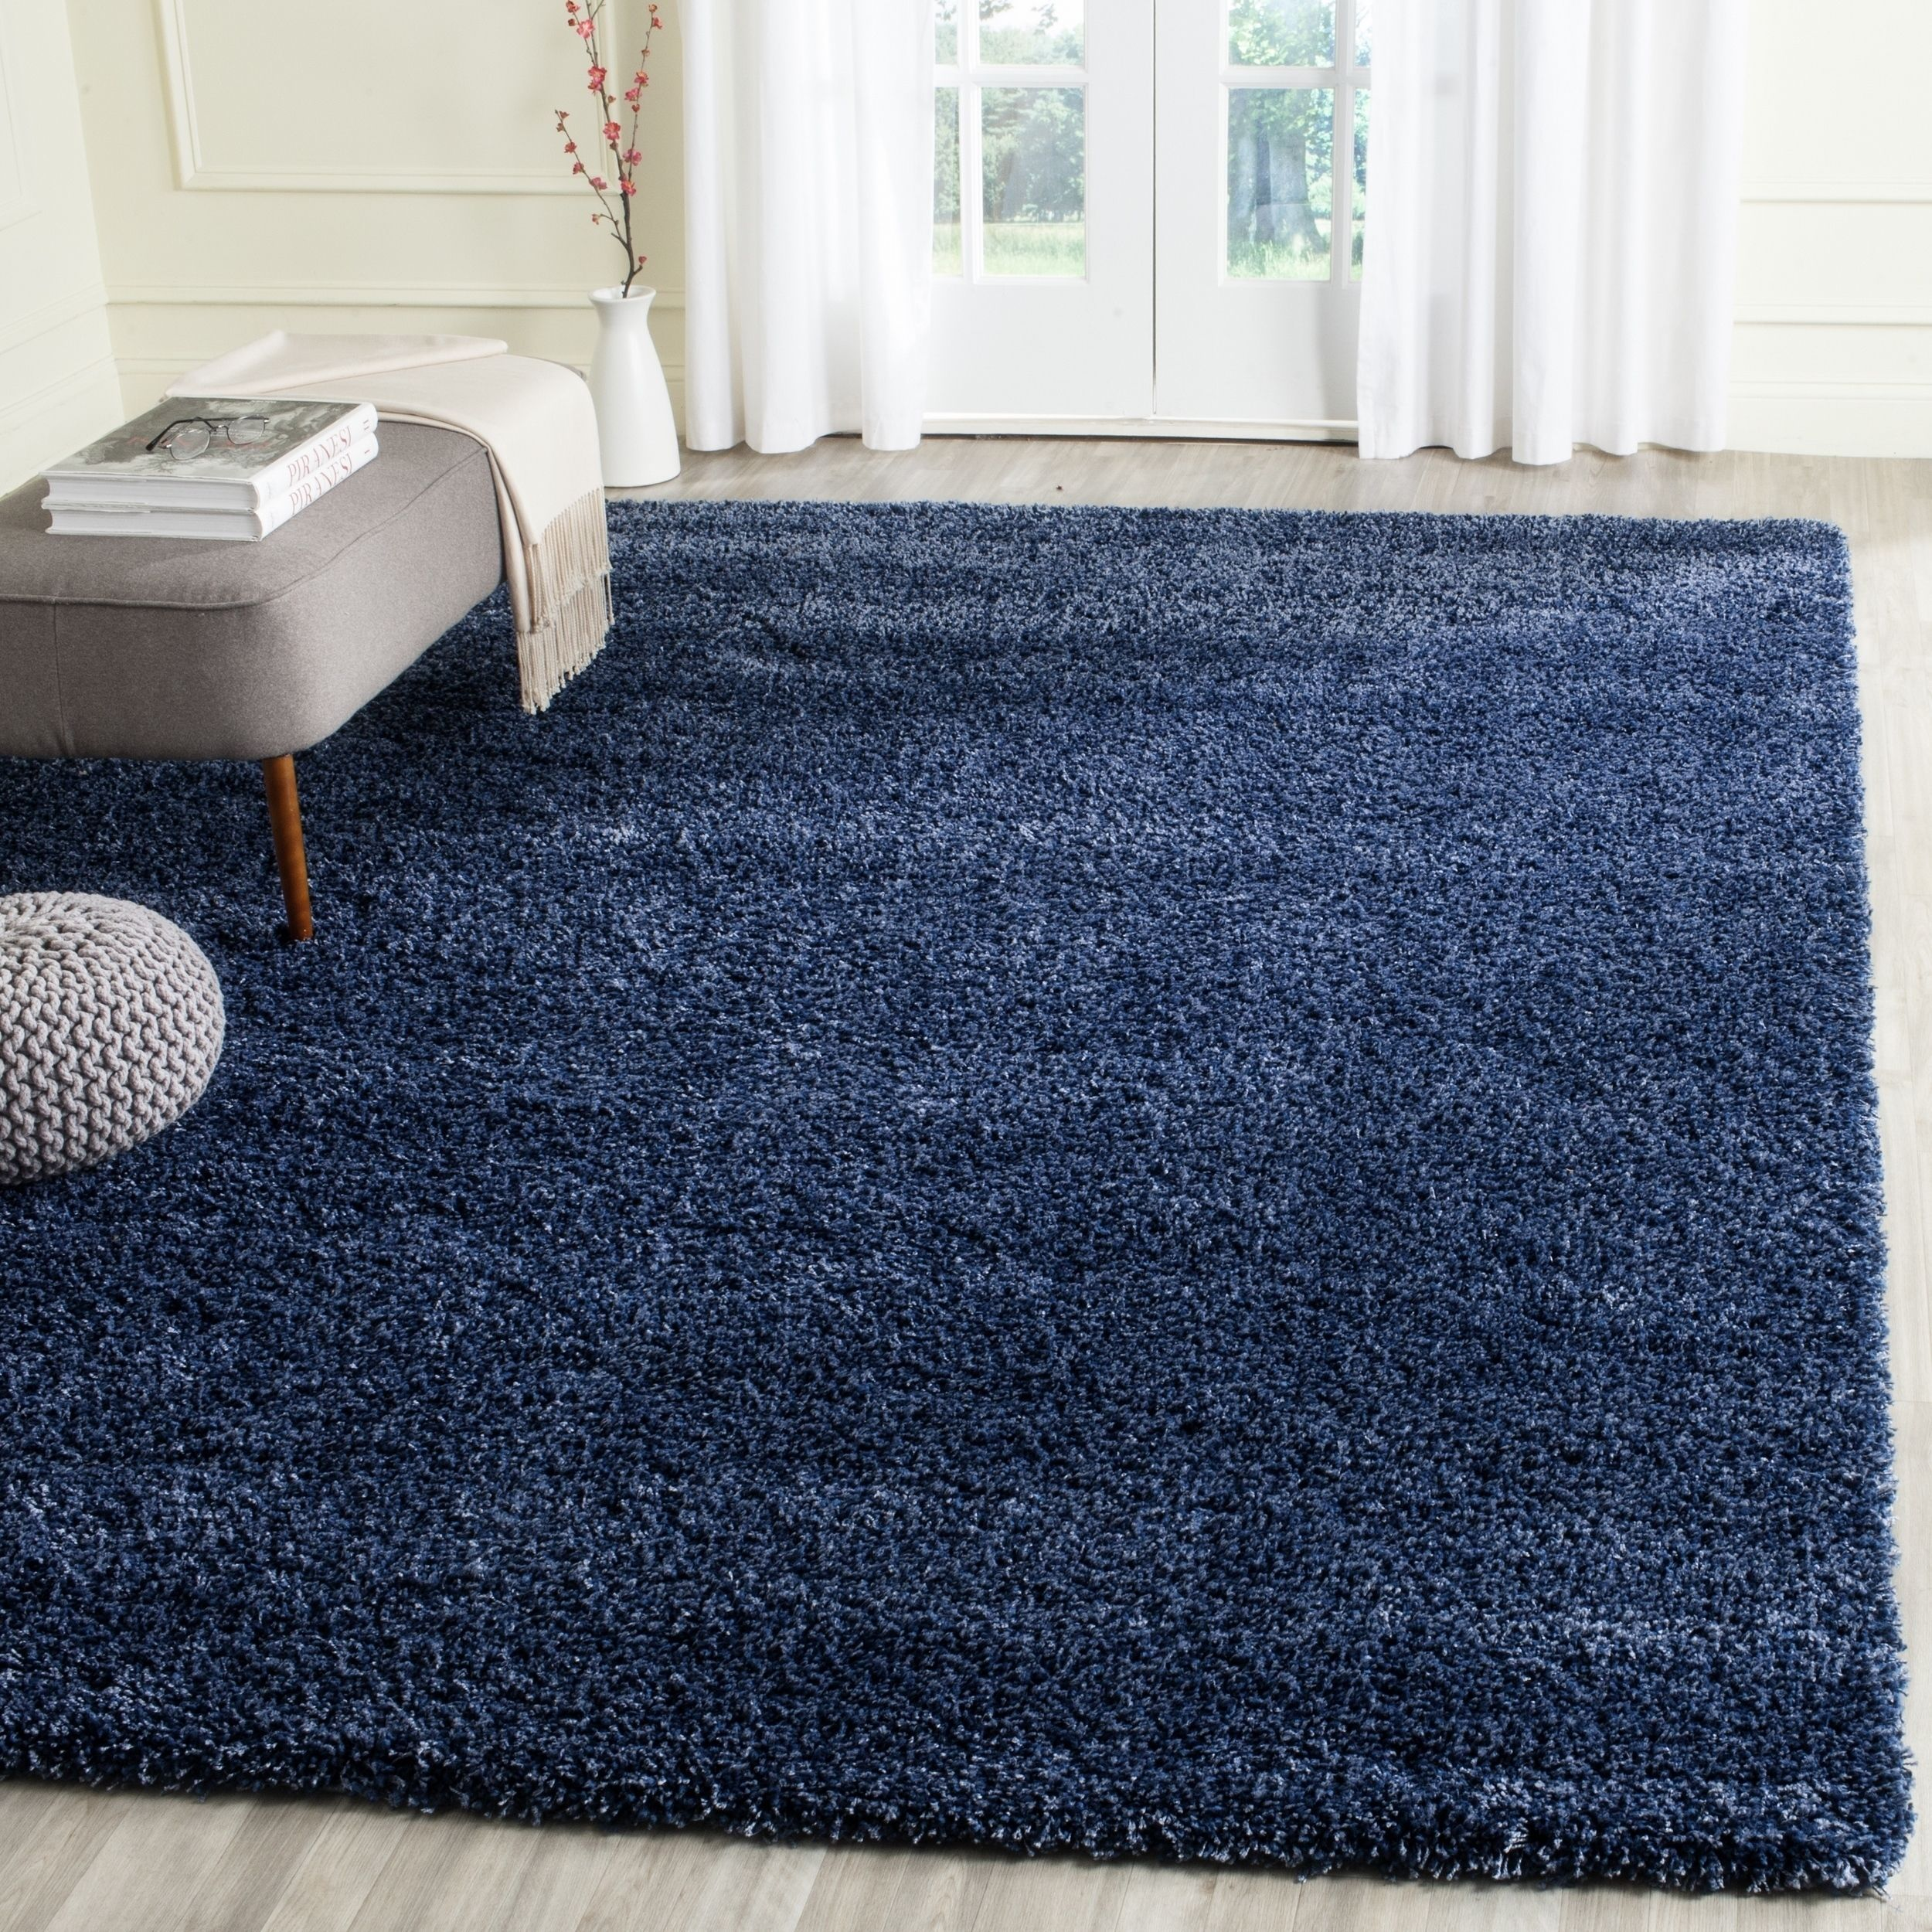 Lovely Safavieh California Cozy Solid Navy (Blue) Shag Rug (11u0027 X 15u0027